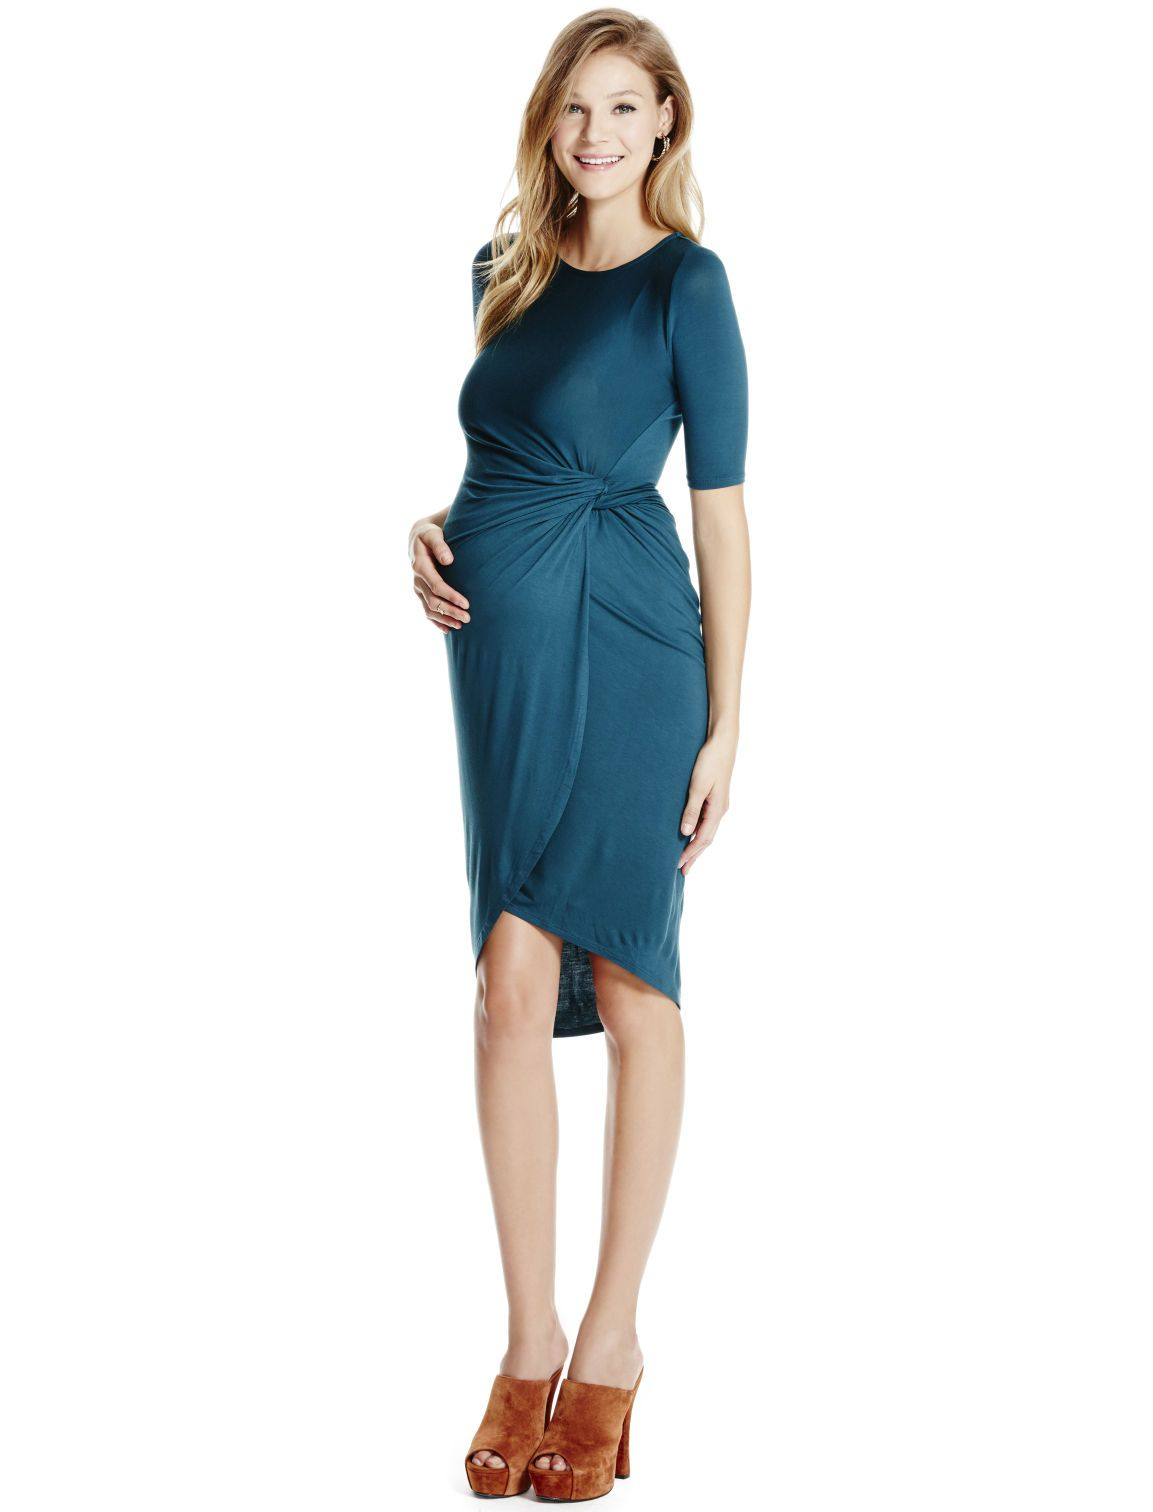 Teal tulip hem 34 sleeve ruched maternity dress by jessica teal tulip hem 34 sleeve ruched maternity dress by jessica simpson available ombrellifo Gallery